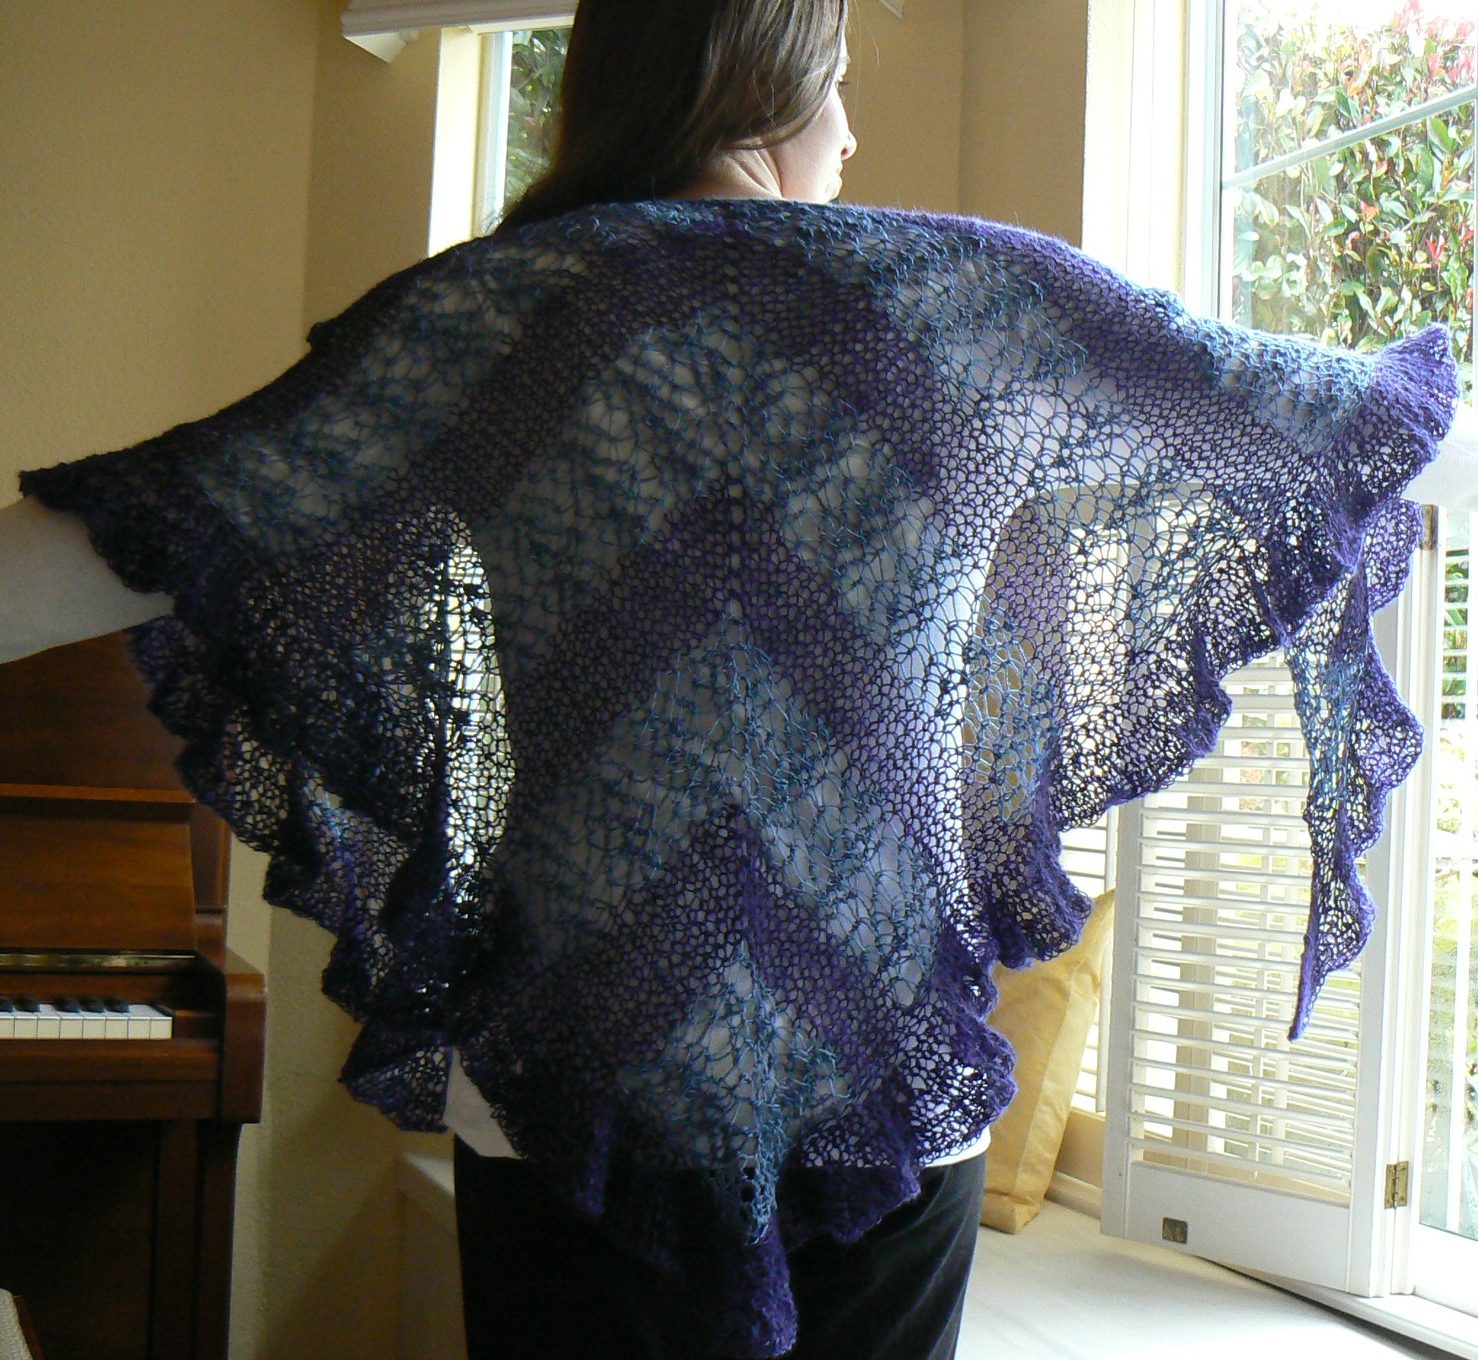 Loom Knit Shawl Pattern : Invisible Loom Innovative Patterns for Loom Knitters: Waves of Lace Shawl, Af...